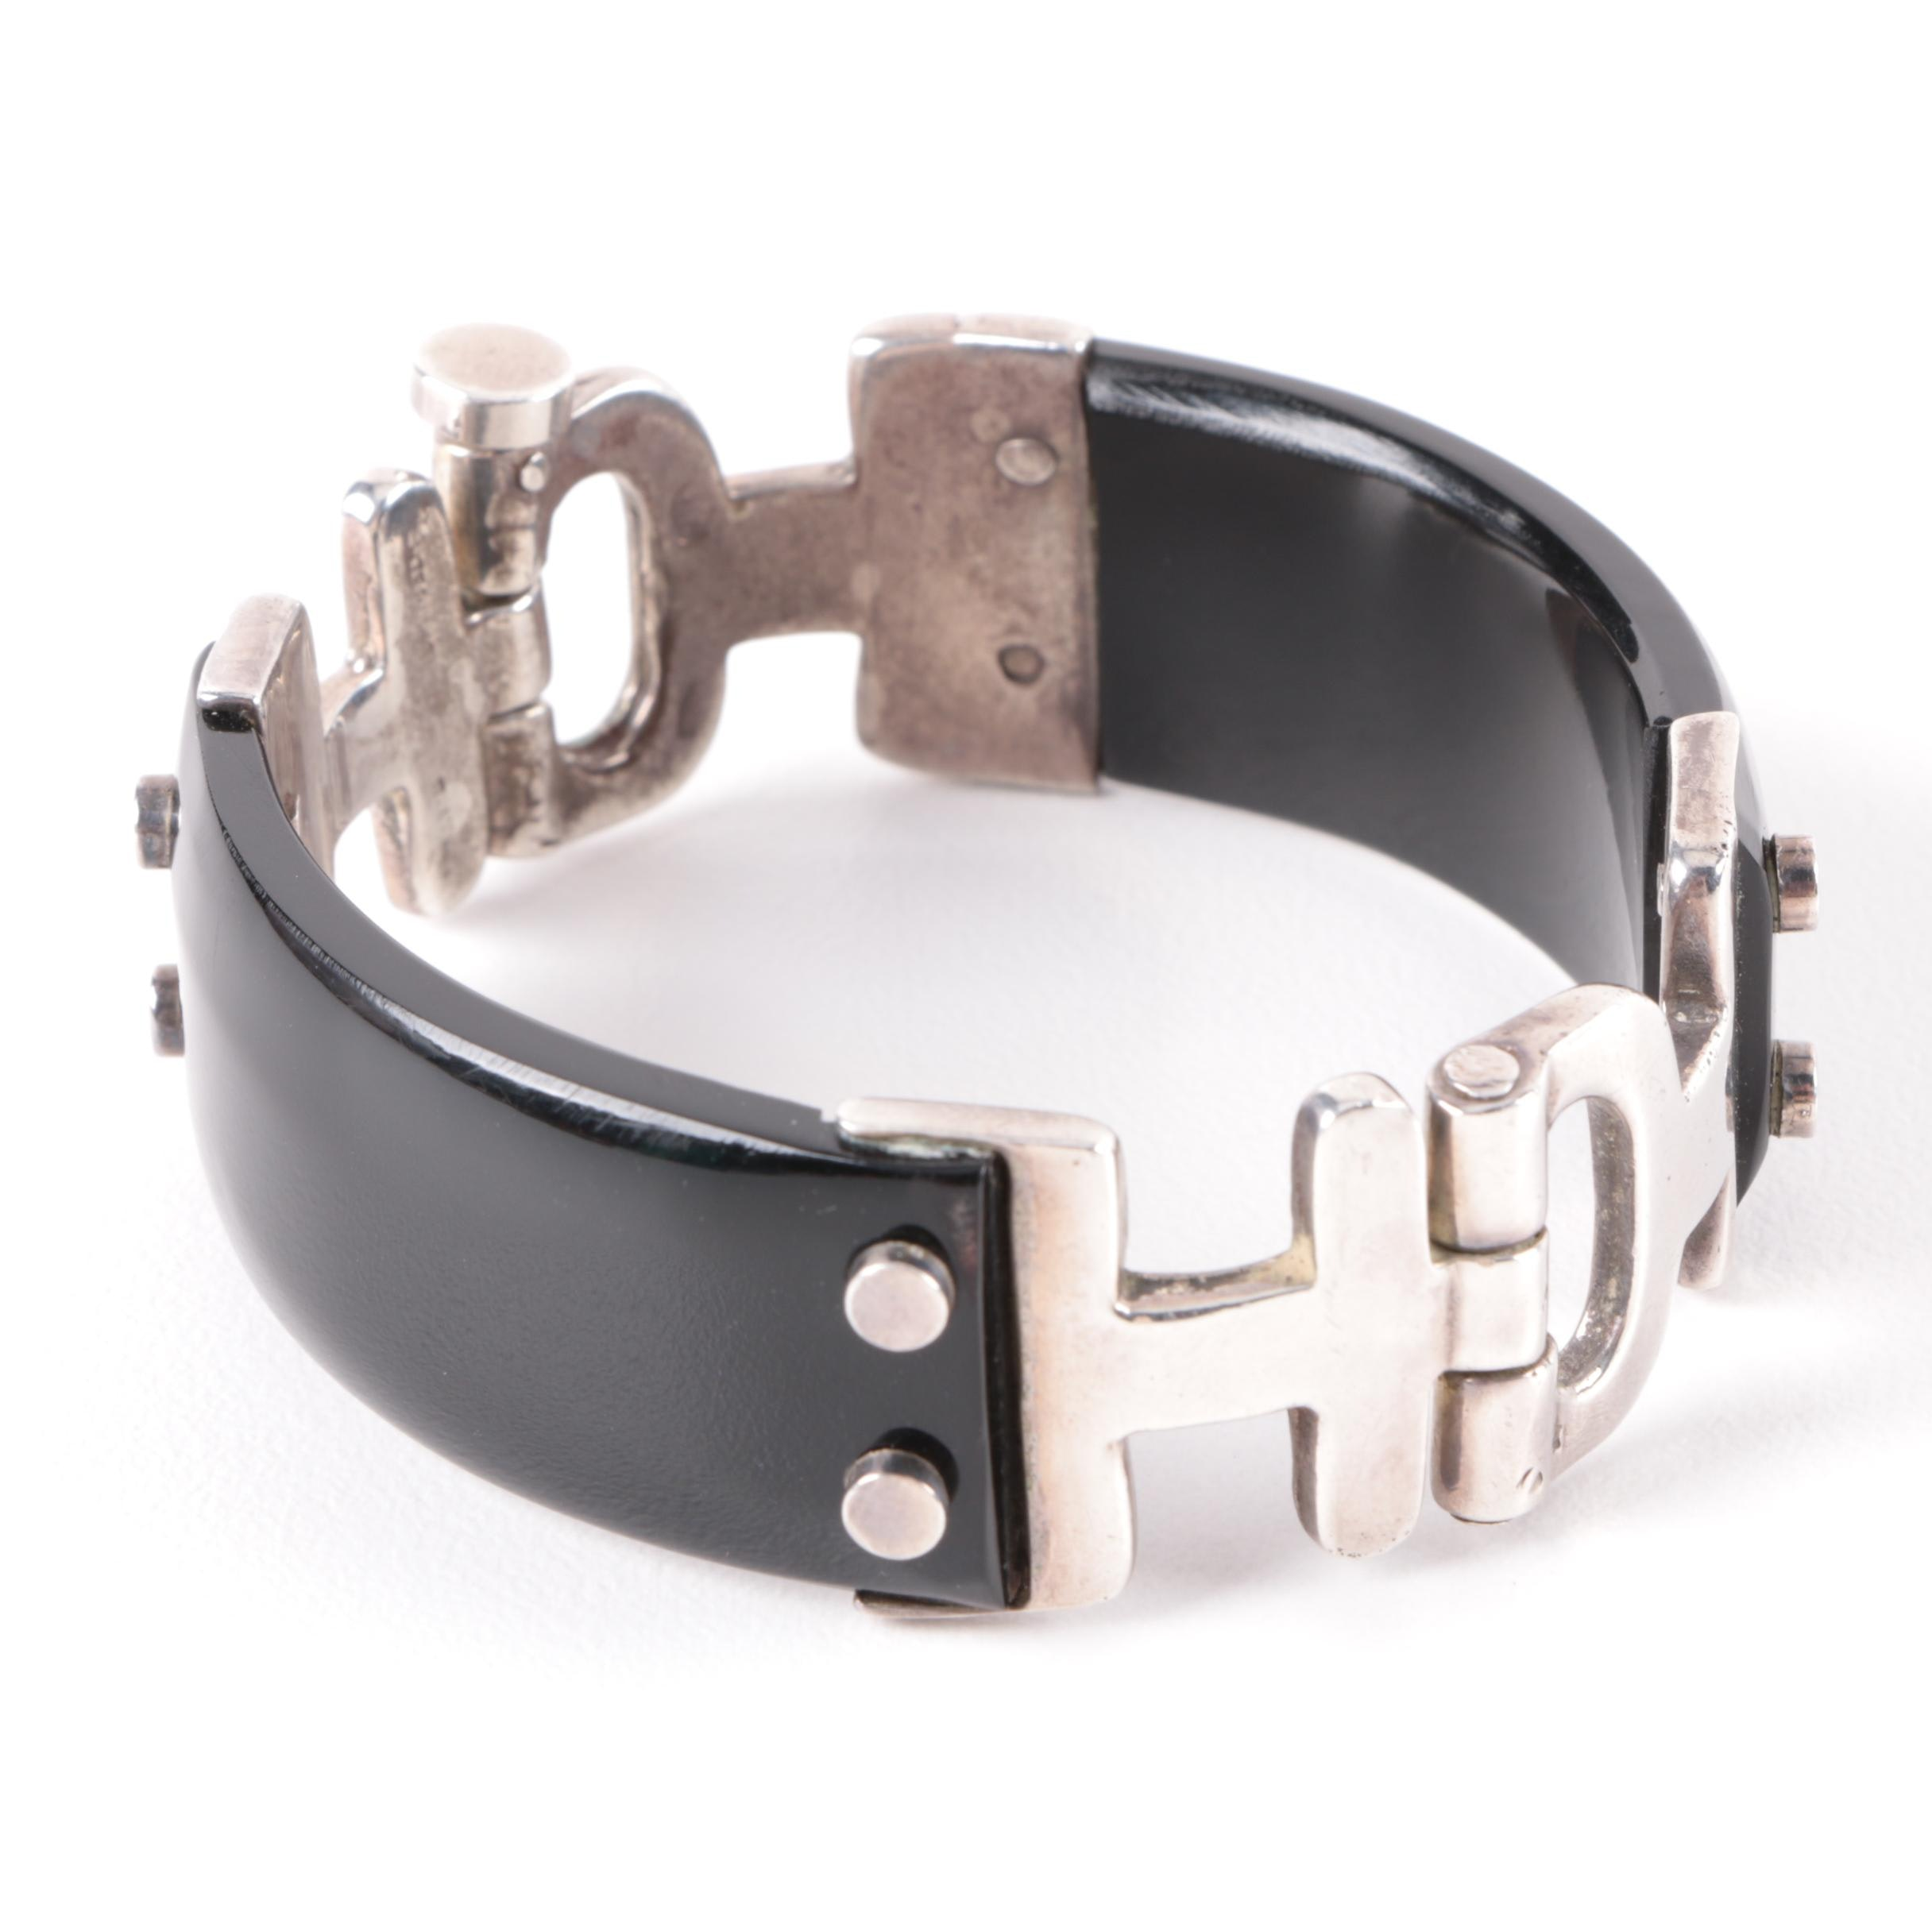 Sterling Silver Black Composite Bracelet with Snap Closure